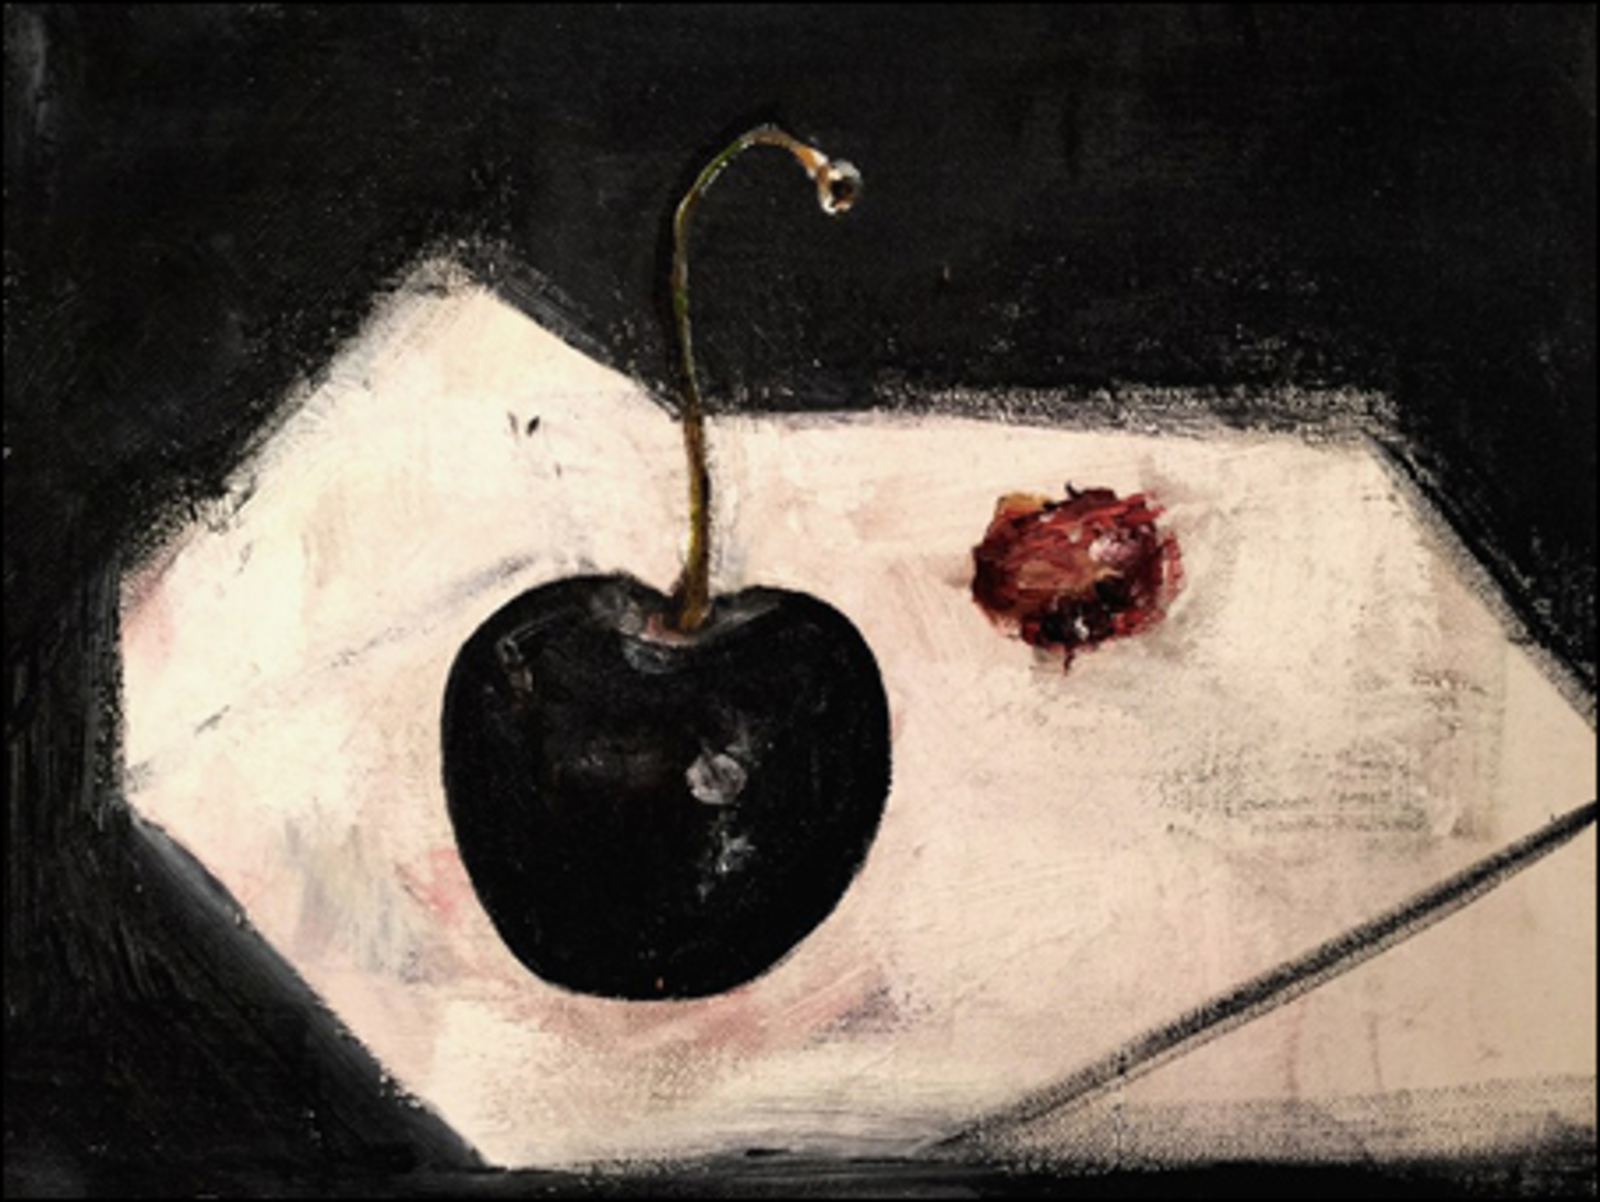 Still life with cherry and stone